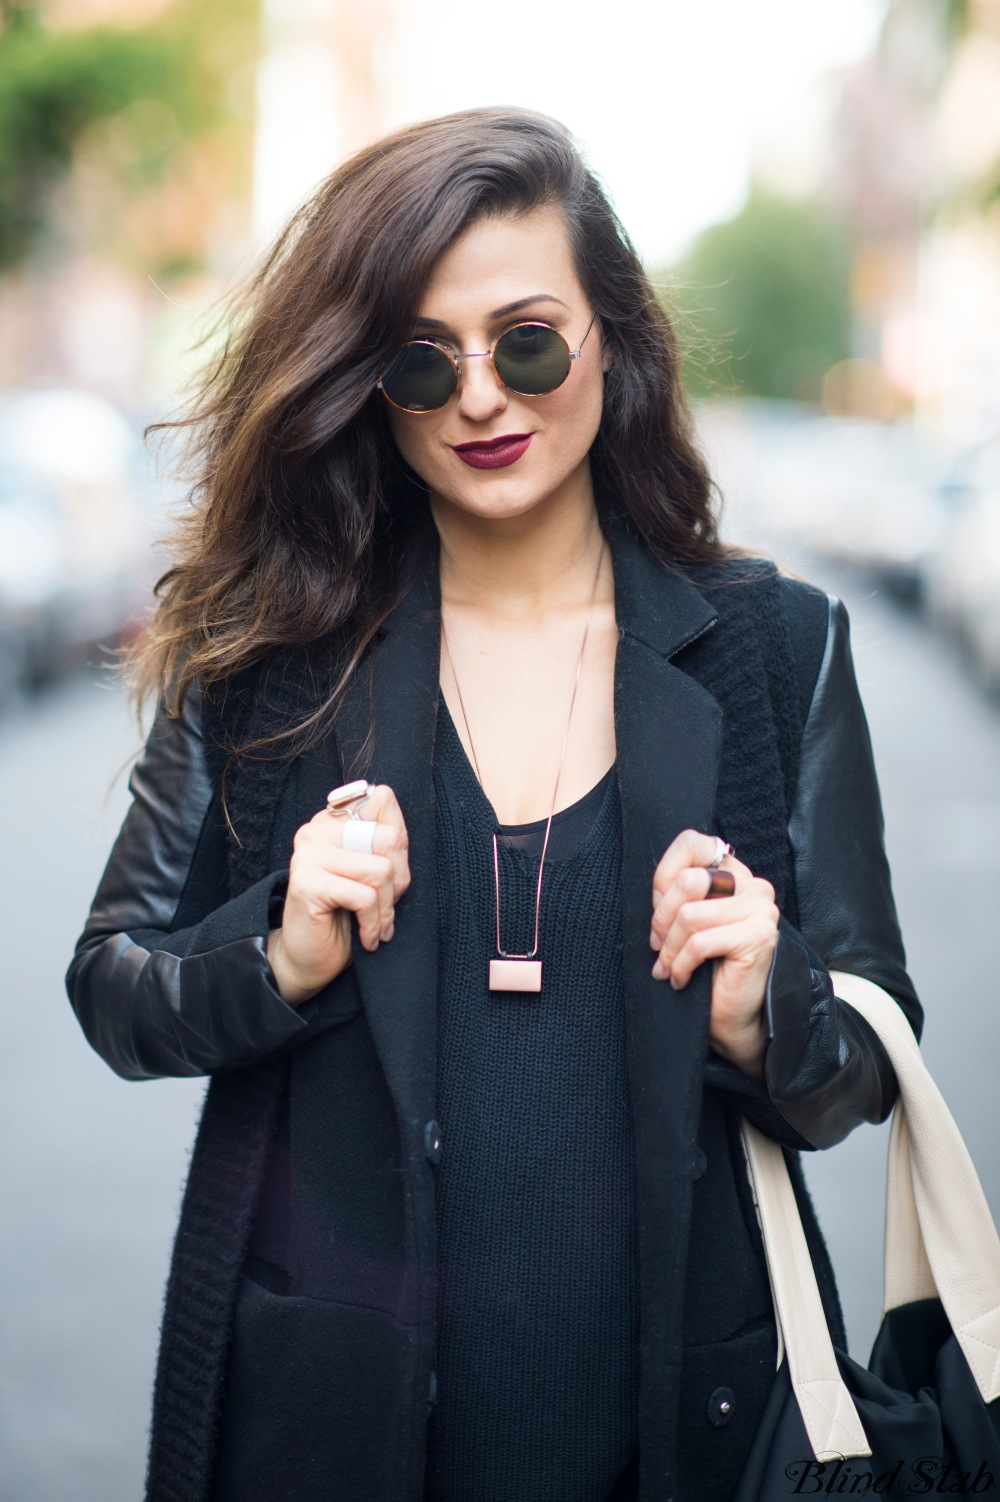 Black-Leather-Sleeve-Jacket-Coat